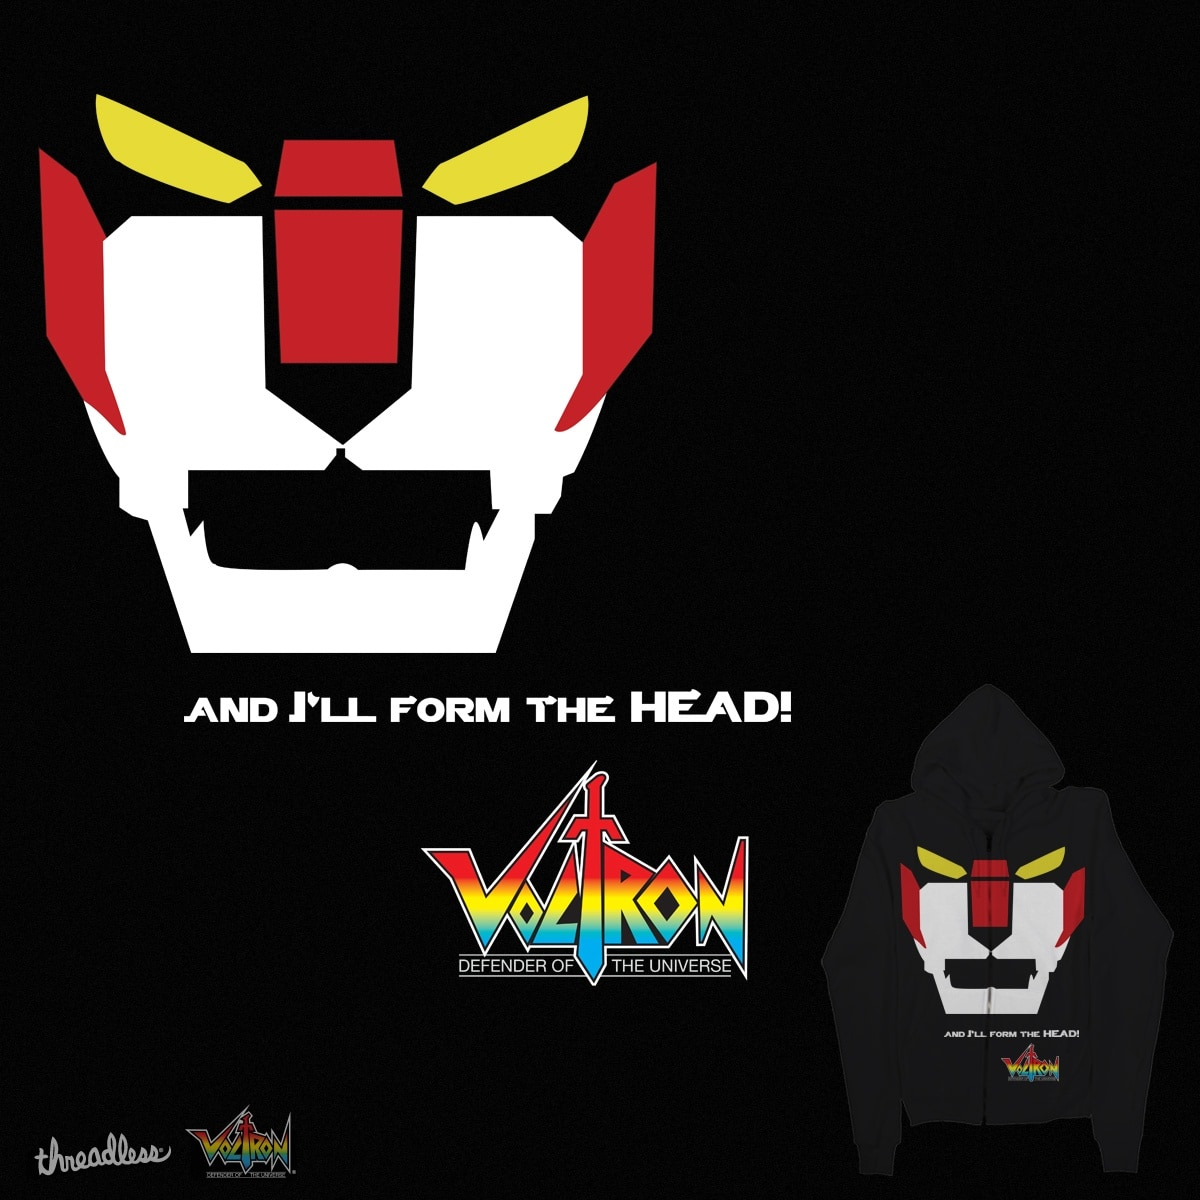 Score And I'll Form the Head! by CMK101380 on Threadless